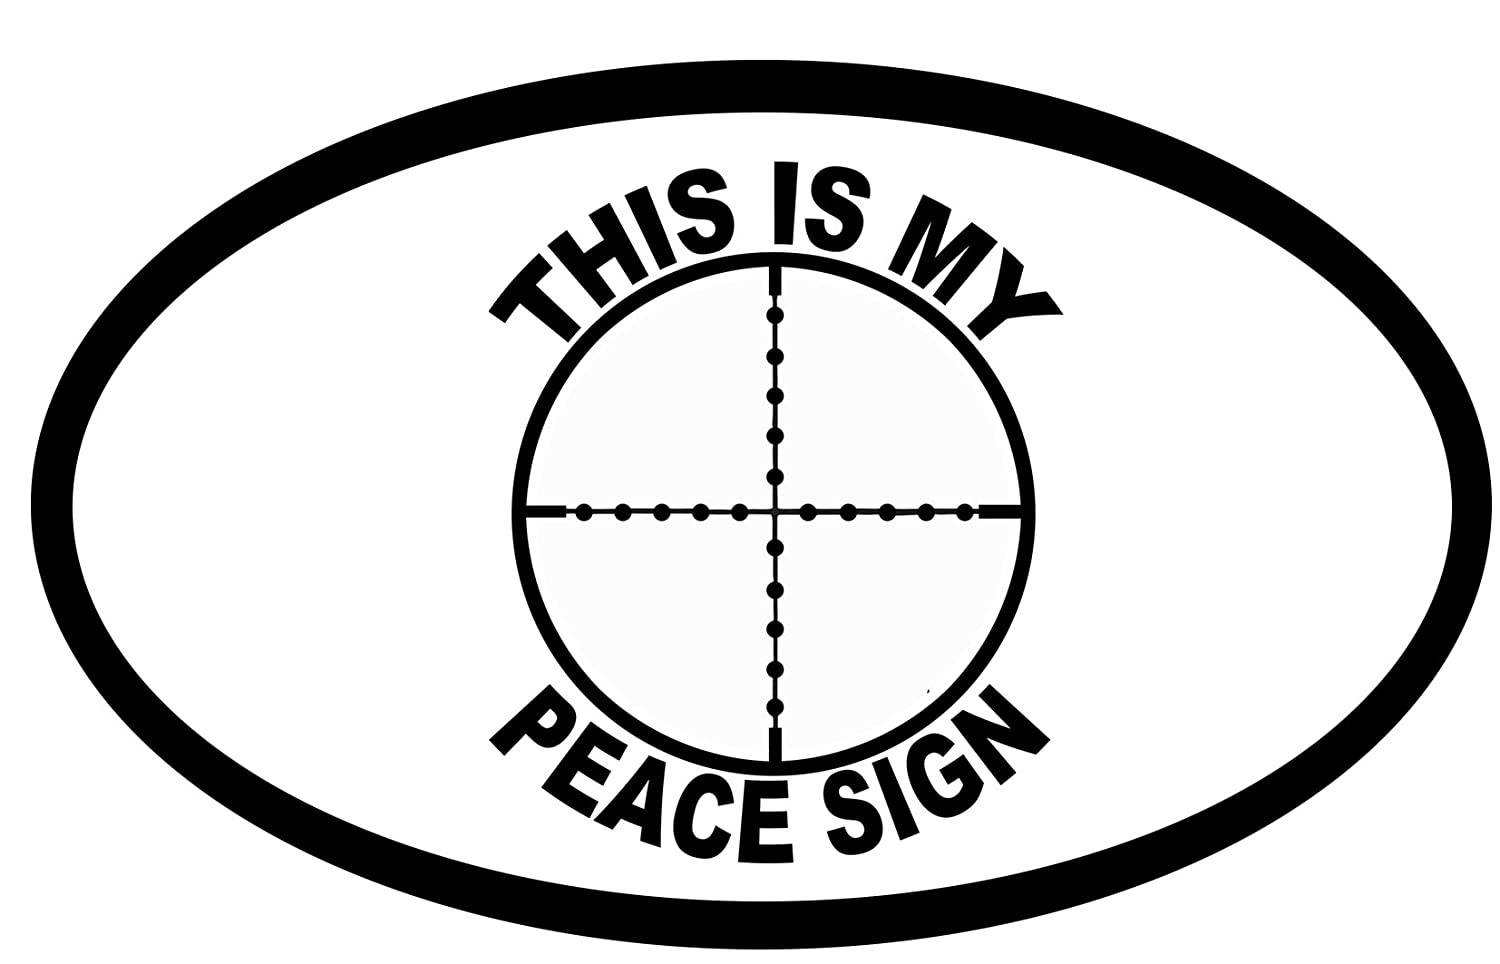 Amazon this is my peace sign bumper sticker gun target cross amazon this is my peace sign bumper sticker gun target cross hairs oval car decal 5 x 3 automotive biocorpaavc Choice Image